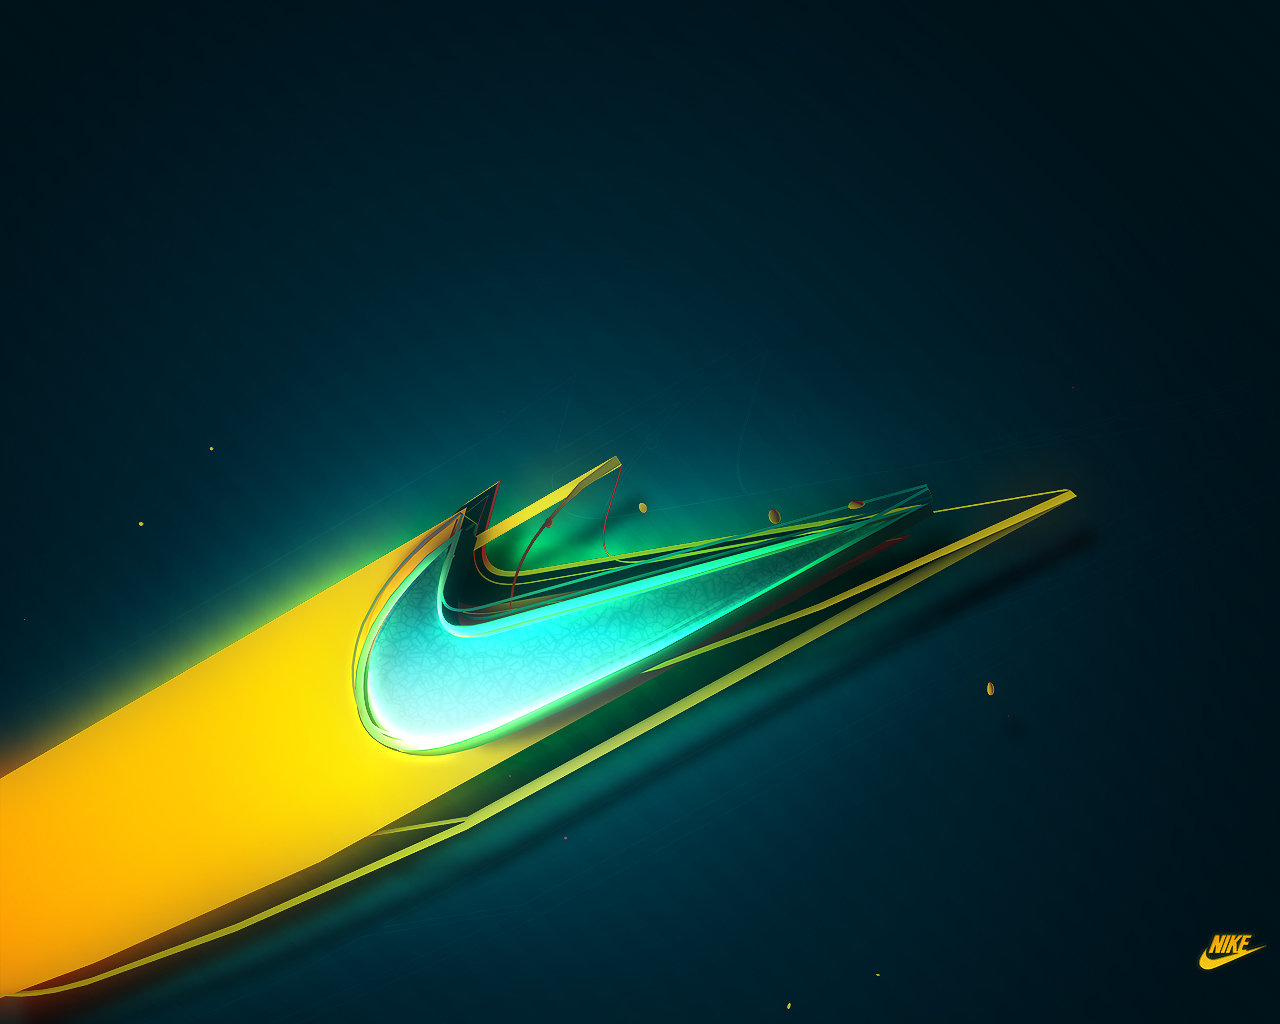 Wallpaper nike wallpaper for android http2bpspot8wghckjokcytnc2lglnefi wallpaper kentbaby nike logo wallpaper index of buycottarizona Choice Image